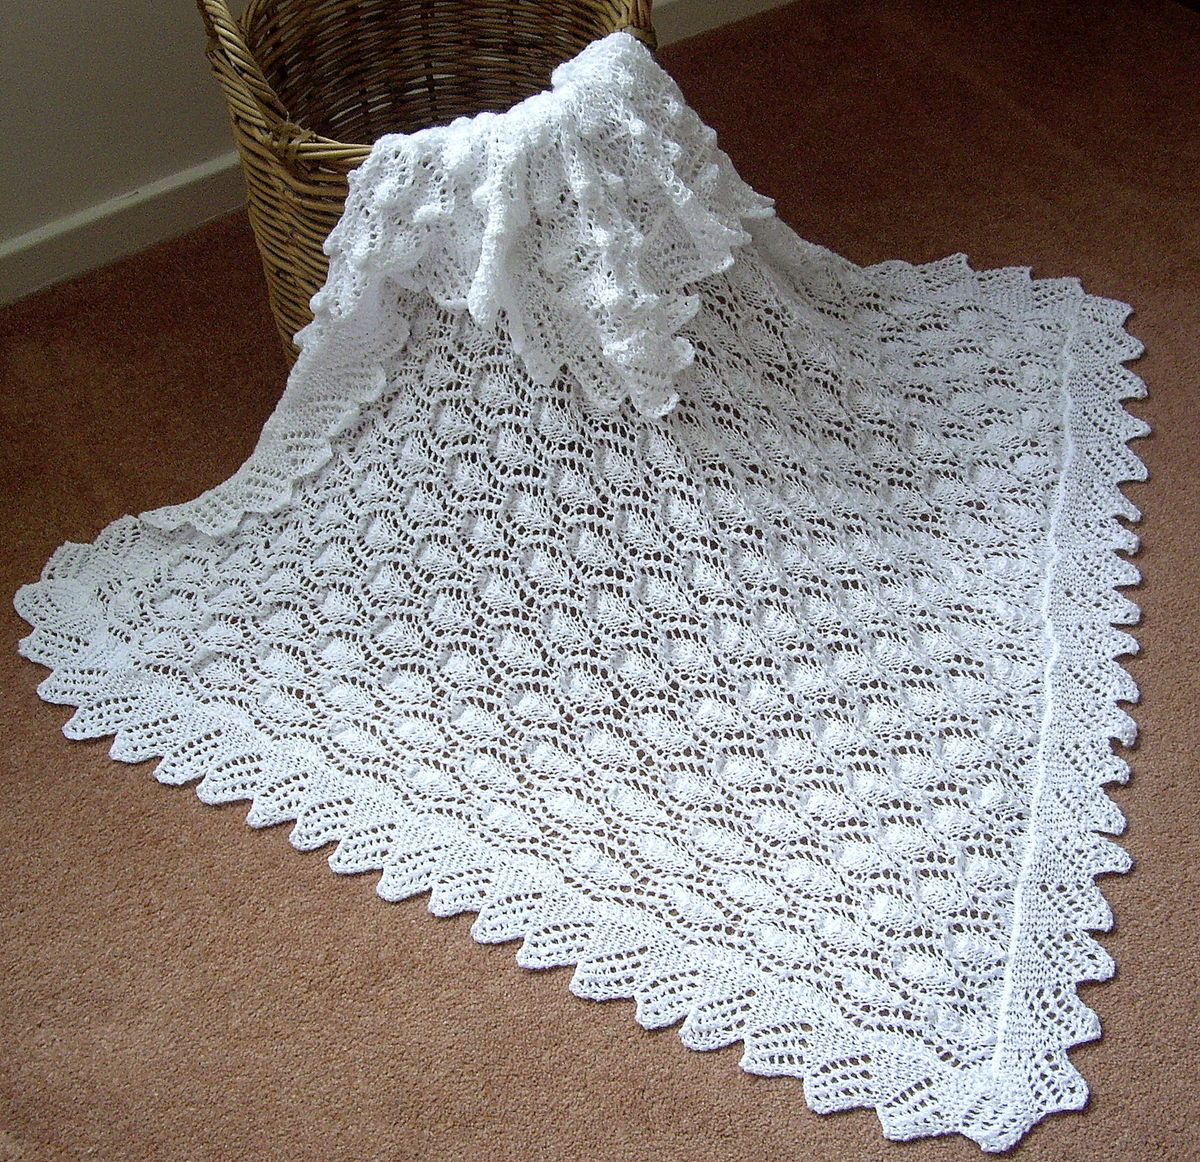 Christening Shawl Knitting Pattern Free : Beautiful Baby Shawl Blanket Hand Knitted in A Lace Medallion Pattern baby ...